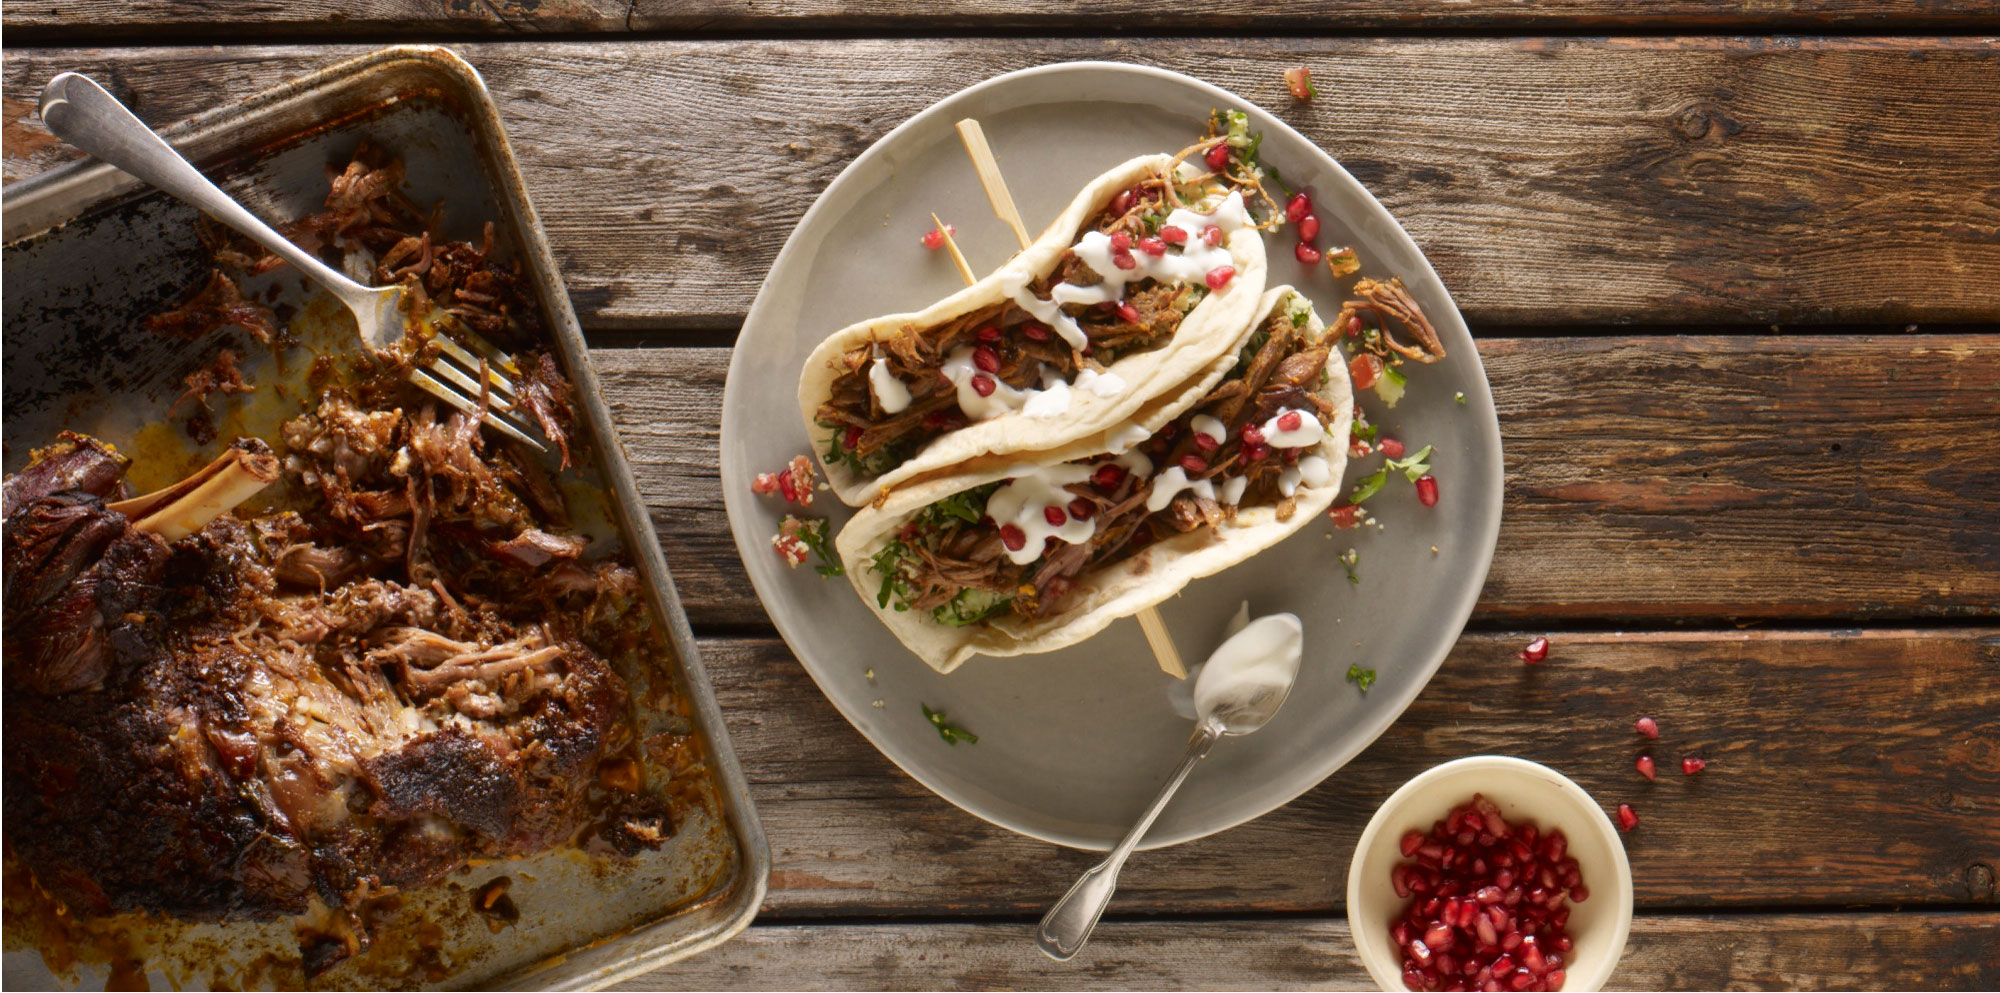 Street foods around the world, William Murray for Knorr